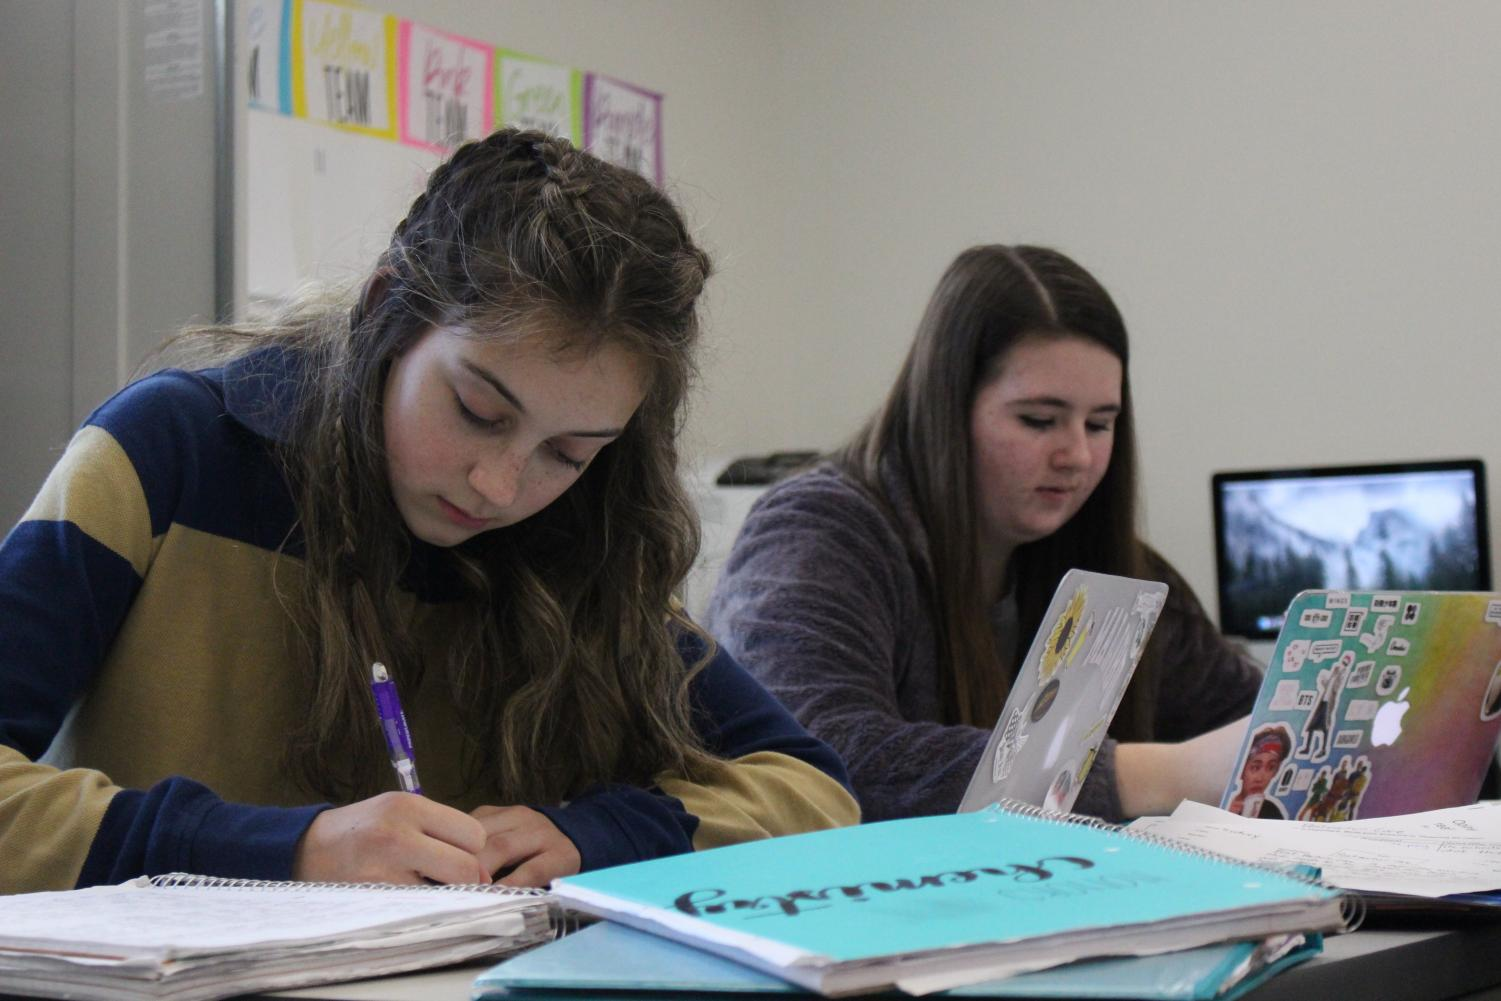 Students Sydney Brown and Paige Snider work on homework.